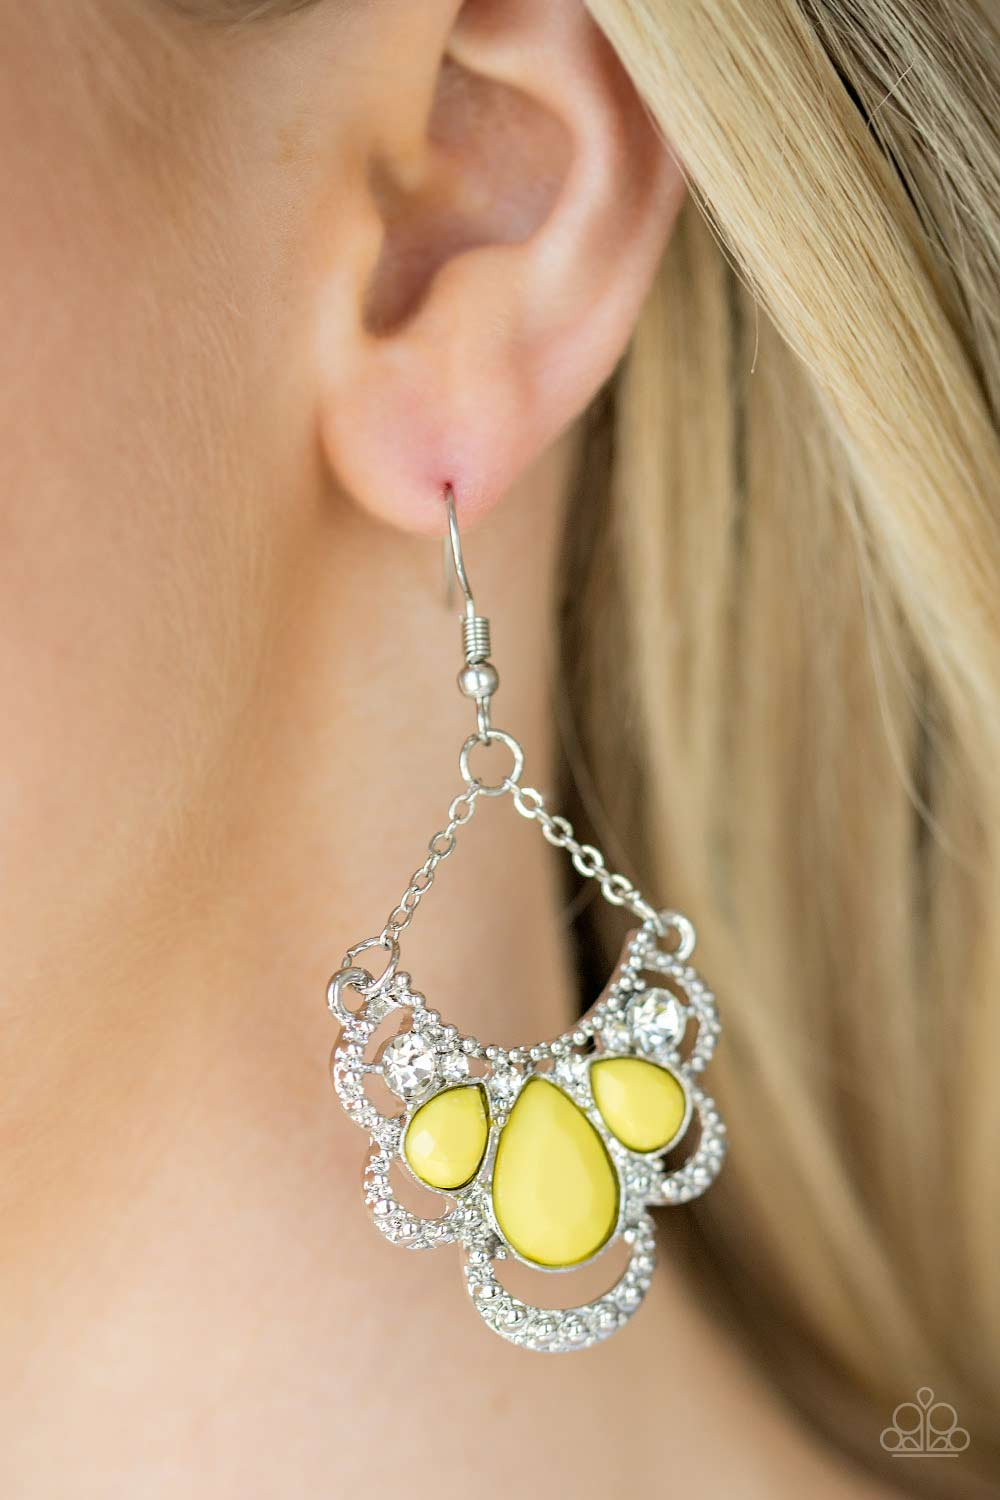 Caribbean Royalty - Yellow Earrings by Paparazzi $5.00 www.my-bling.com